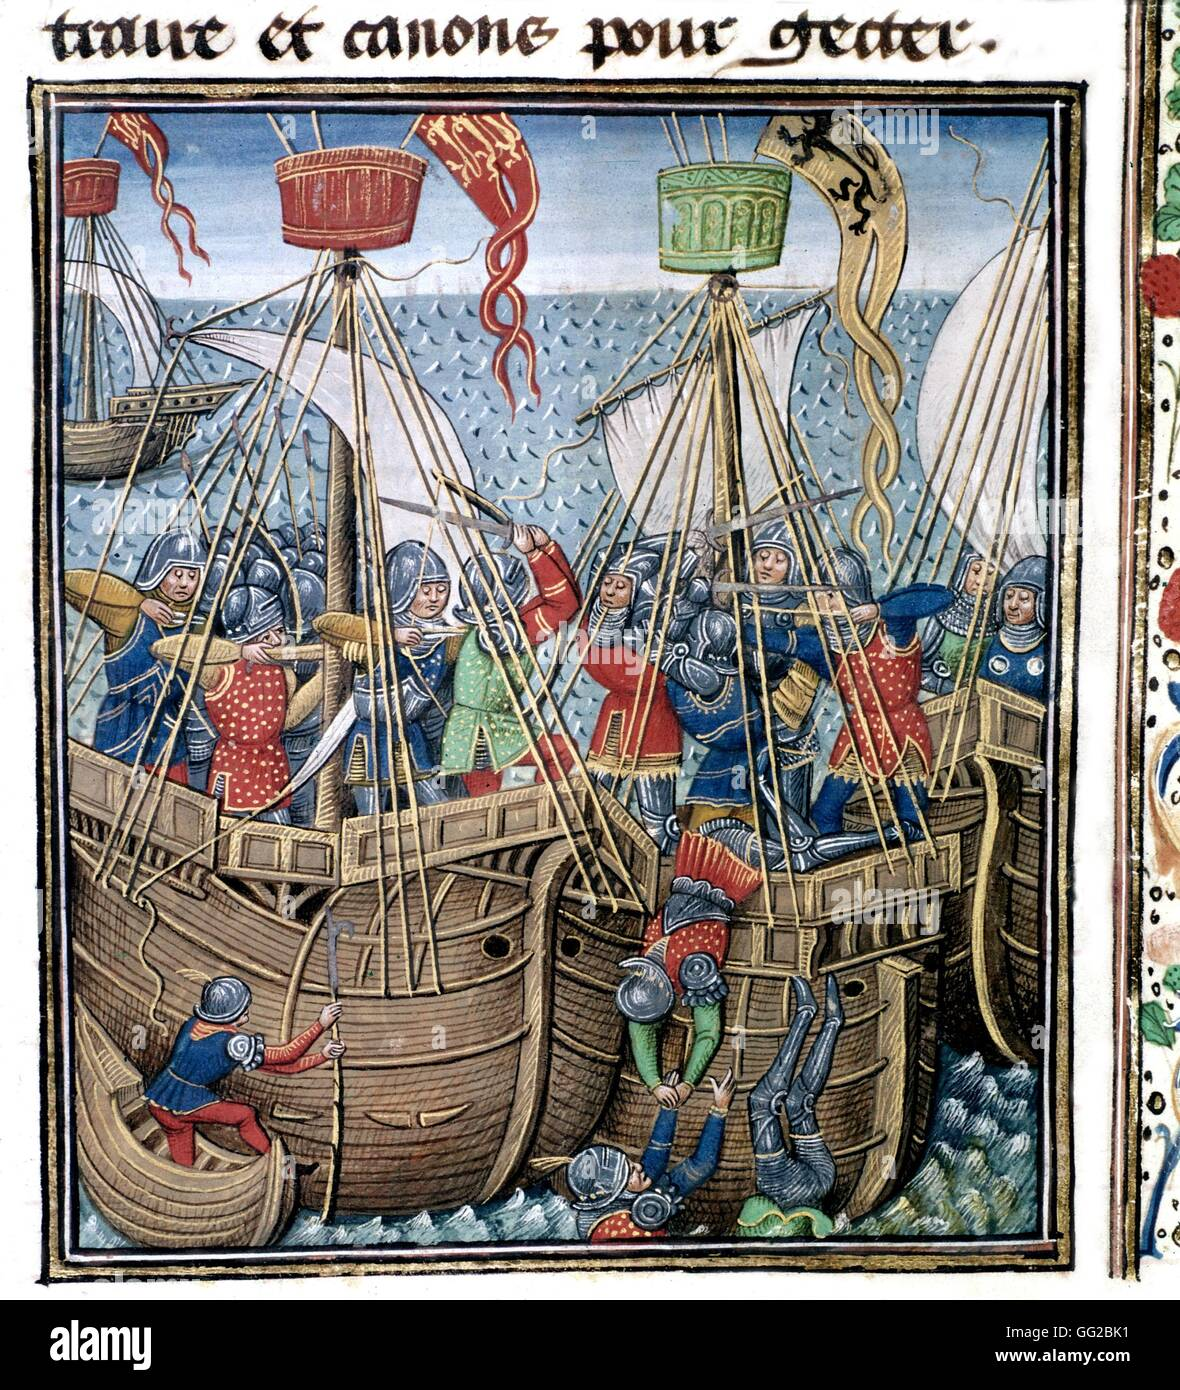 Froissart's Chronicles. Battle of the Ecluse (Battle of the Hundred Years' War, in 1340) 15th century France - Stock Image